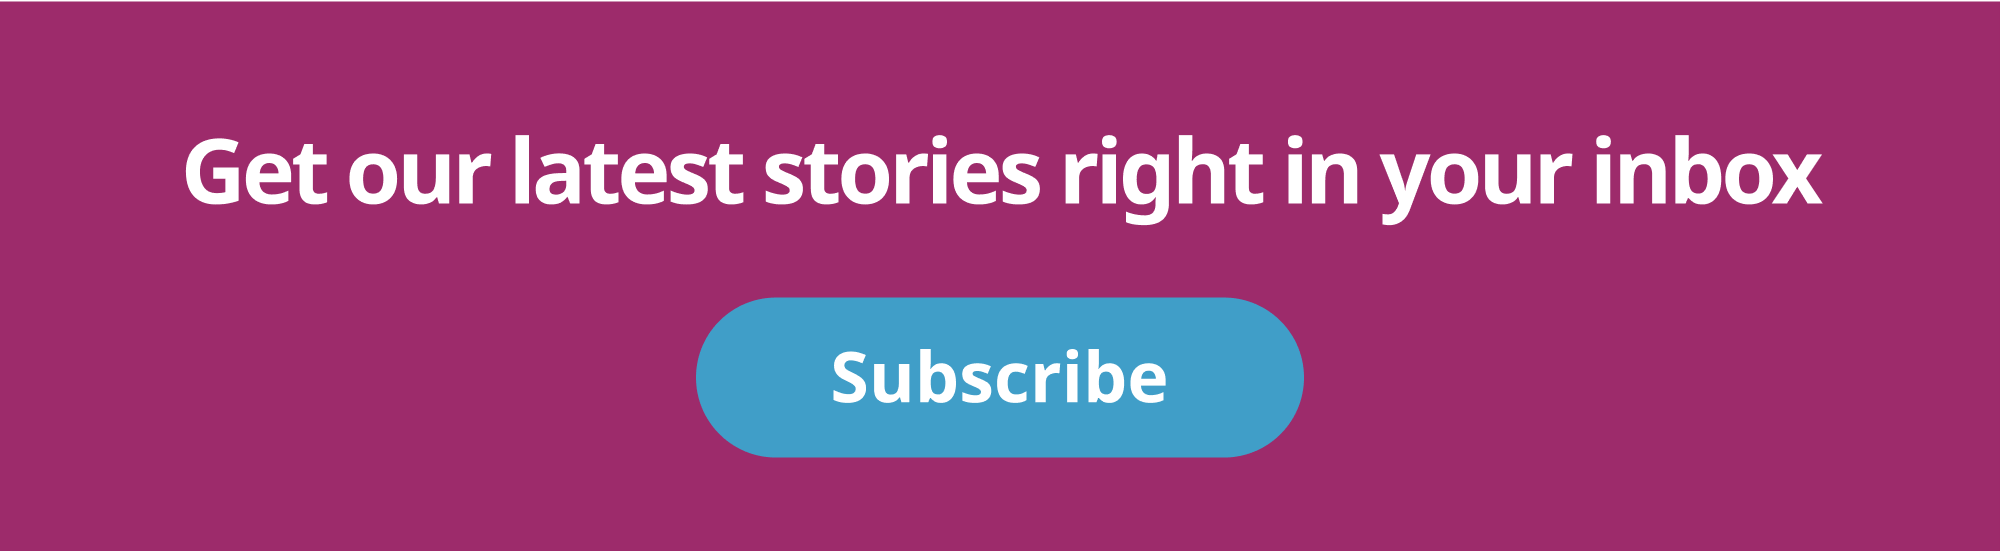 Subscribe to our email newsletter to get our latest stories right in your inbox.